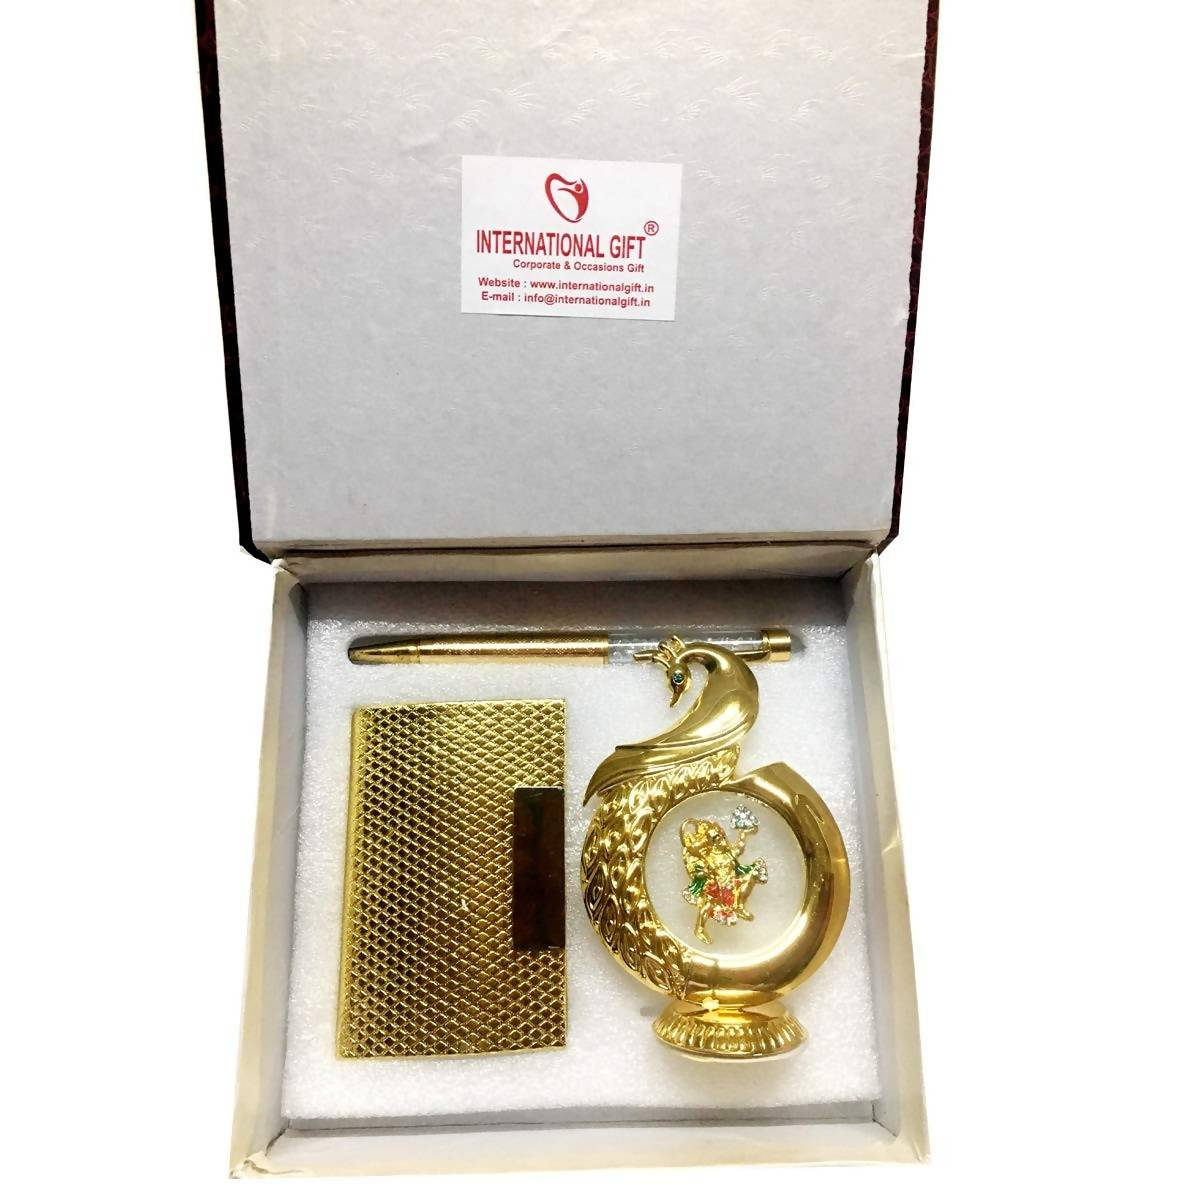 International Gift Gold Plated Pen and Visiting Card Holder